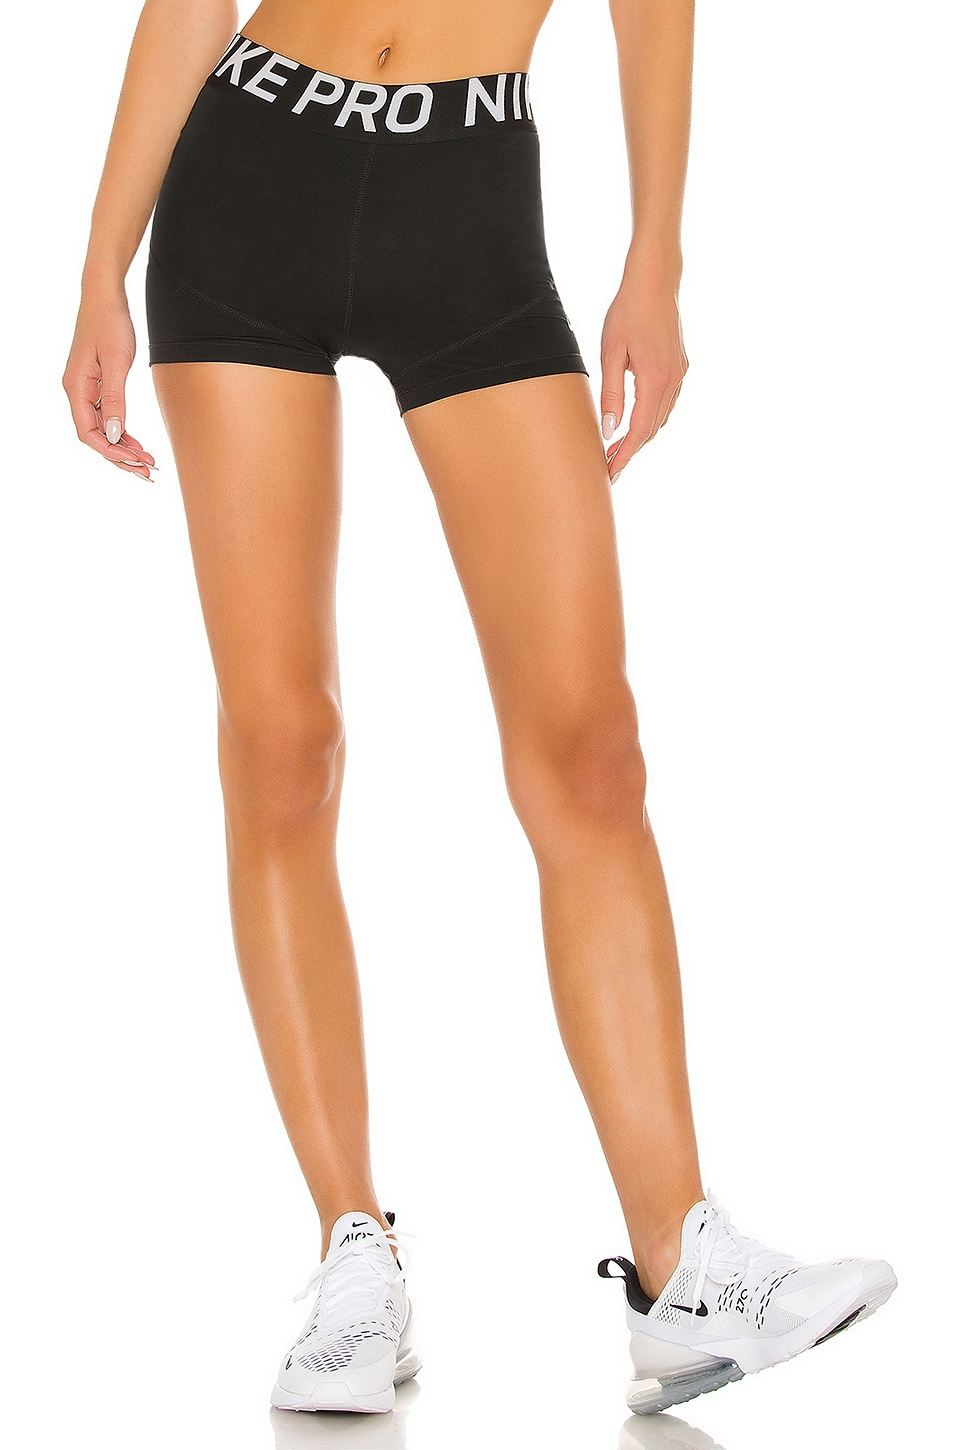 Nike Pro 3 Inch Short in Black & White